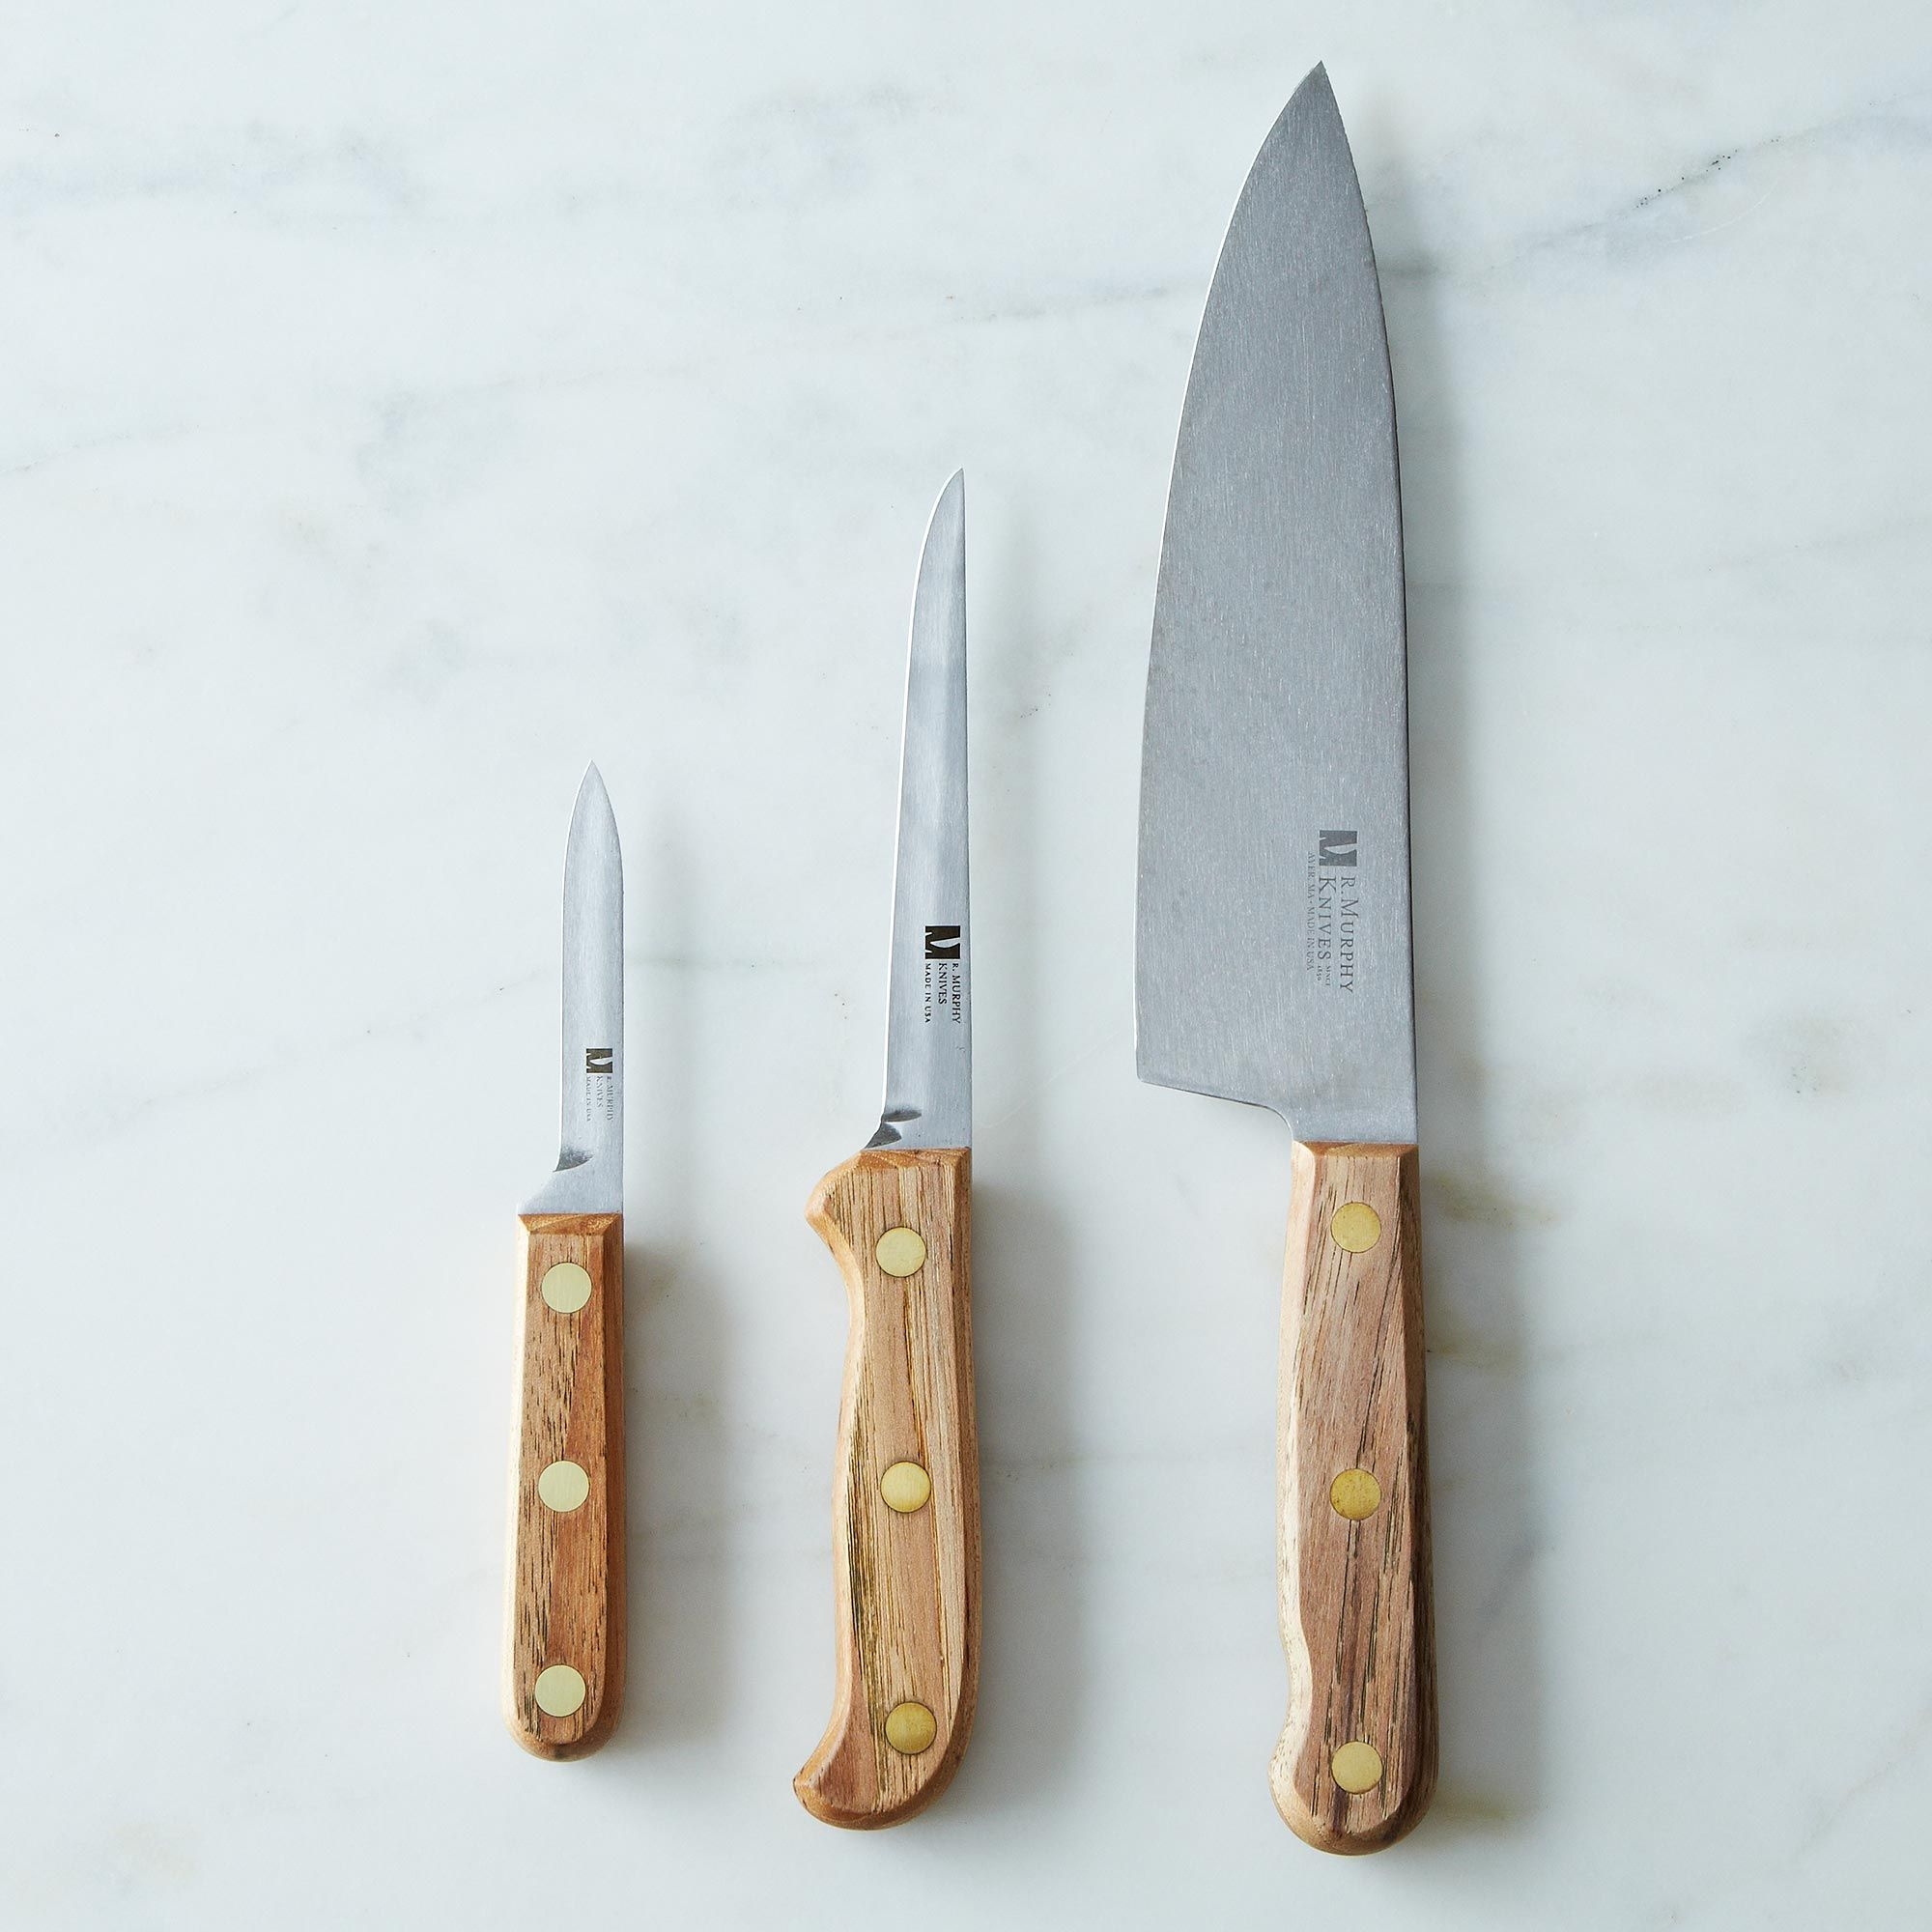 r murphy reclaimed wood carbon steel knife on food52